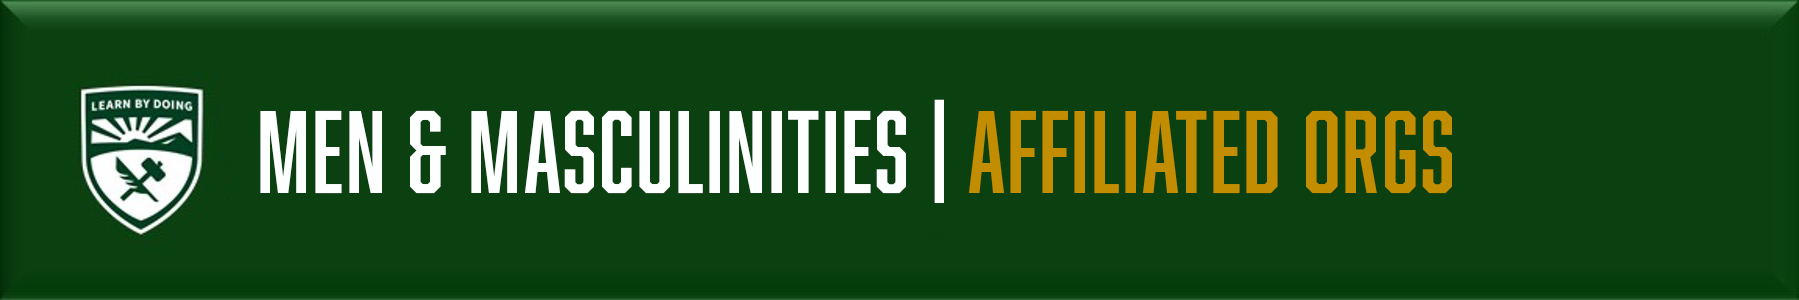 Men & Masculinities - Affiliated Orgs